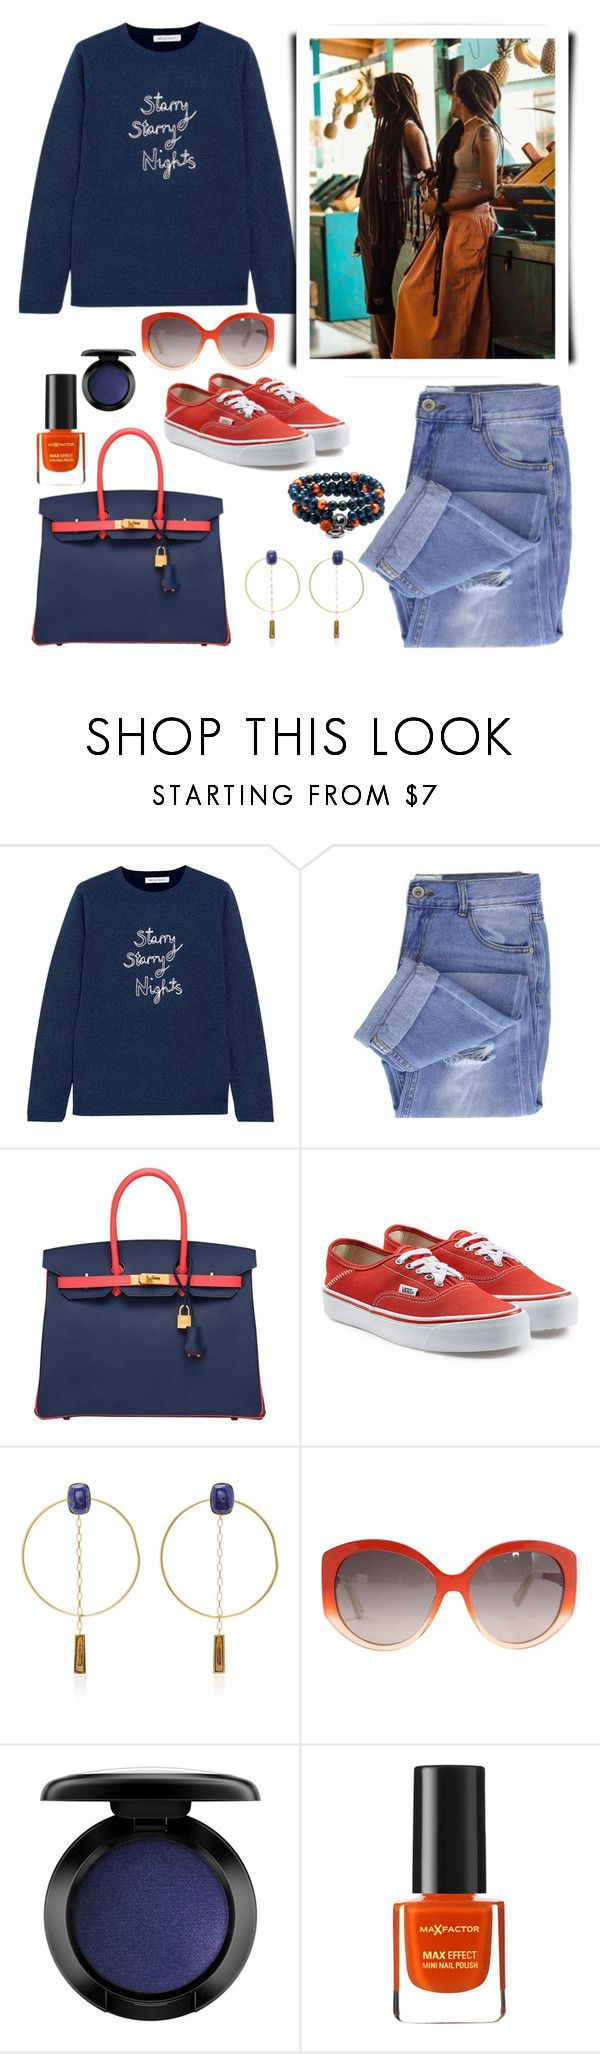 """Everyday Look"" by aharcaki on Polyvore featuring Bella Freud, Taya, Hermès, Vans, Isabel Marant, Christian Dior, John Lewis and Max Factor"